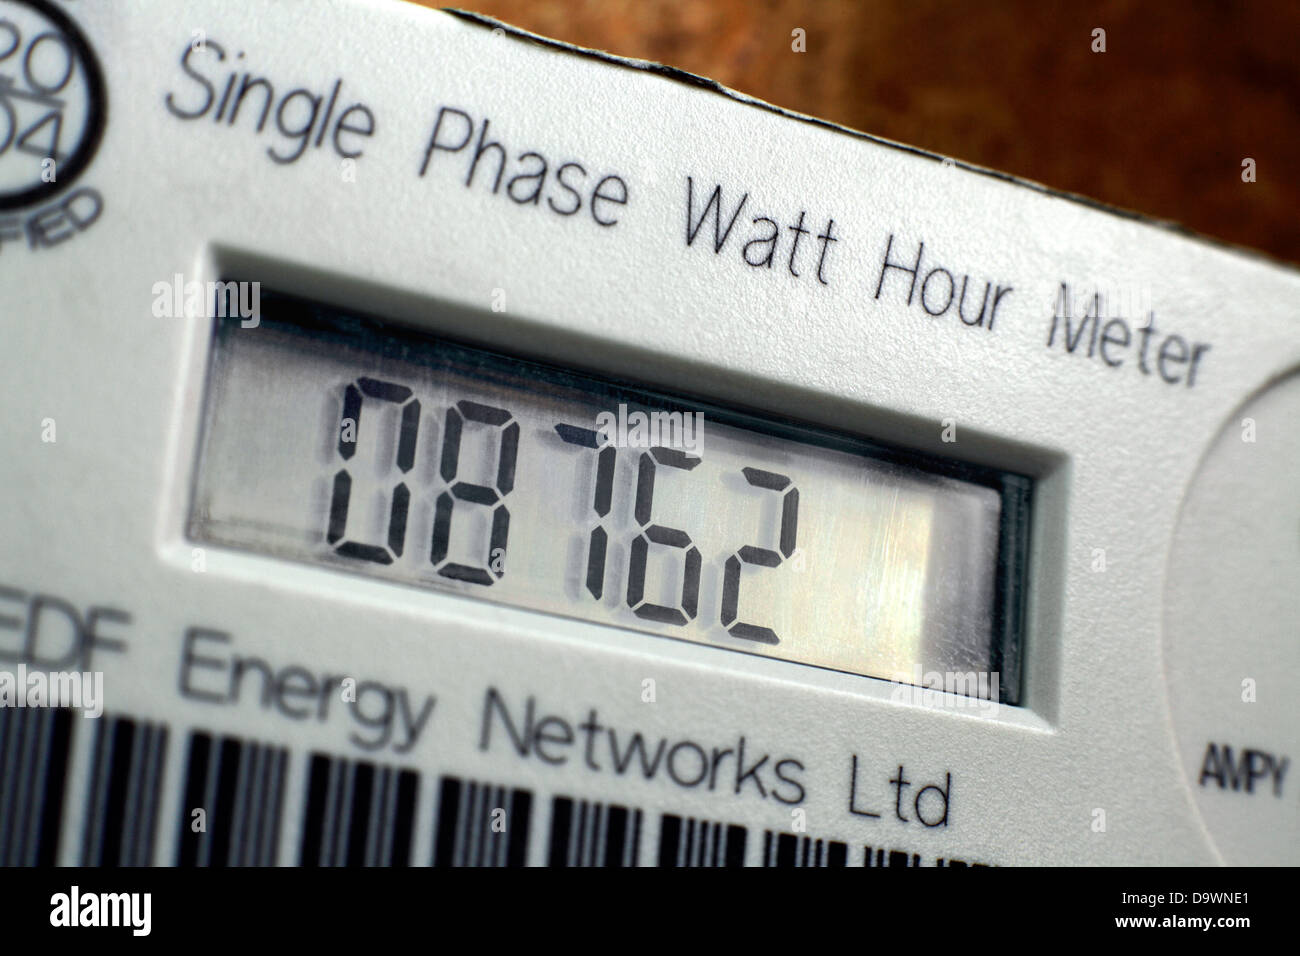 Close up of an electricity meter in a house, showing the number of watts of electricity used. - Stock Image